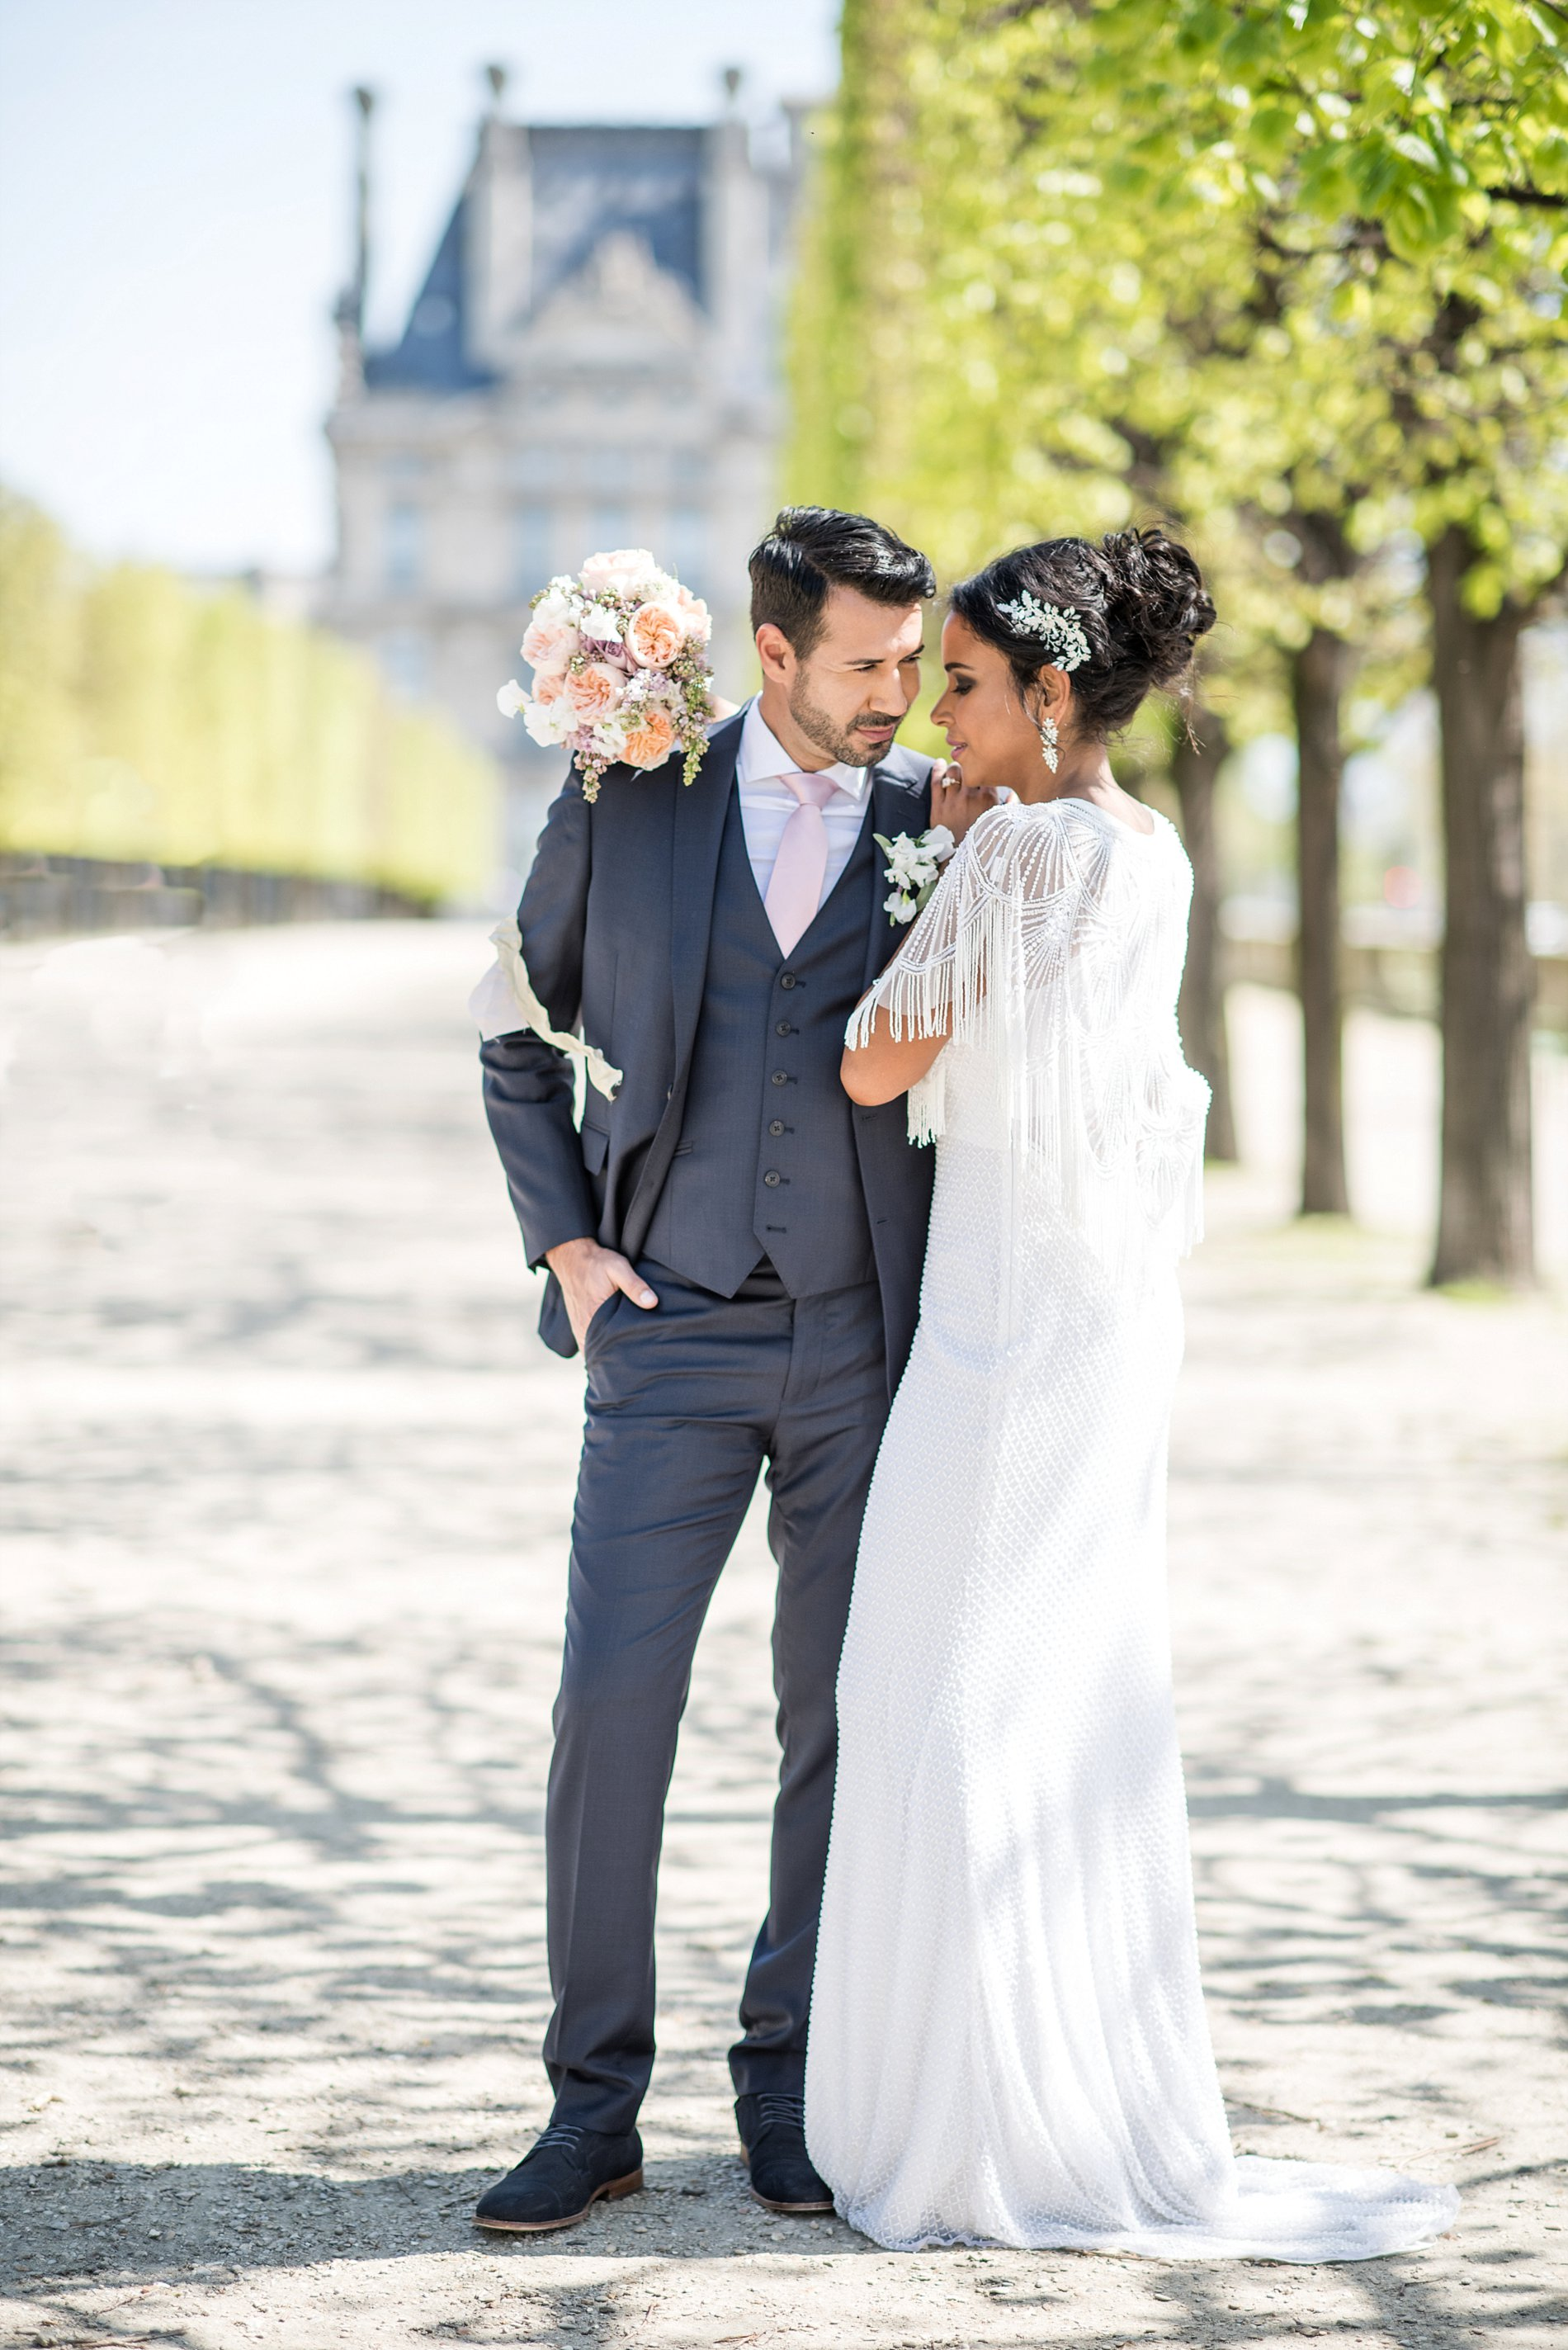 Paris elopement wedding photography by Jane Beadnell Photography-90